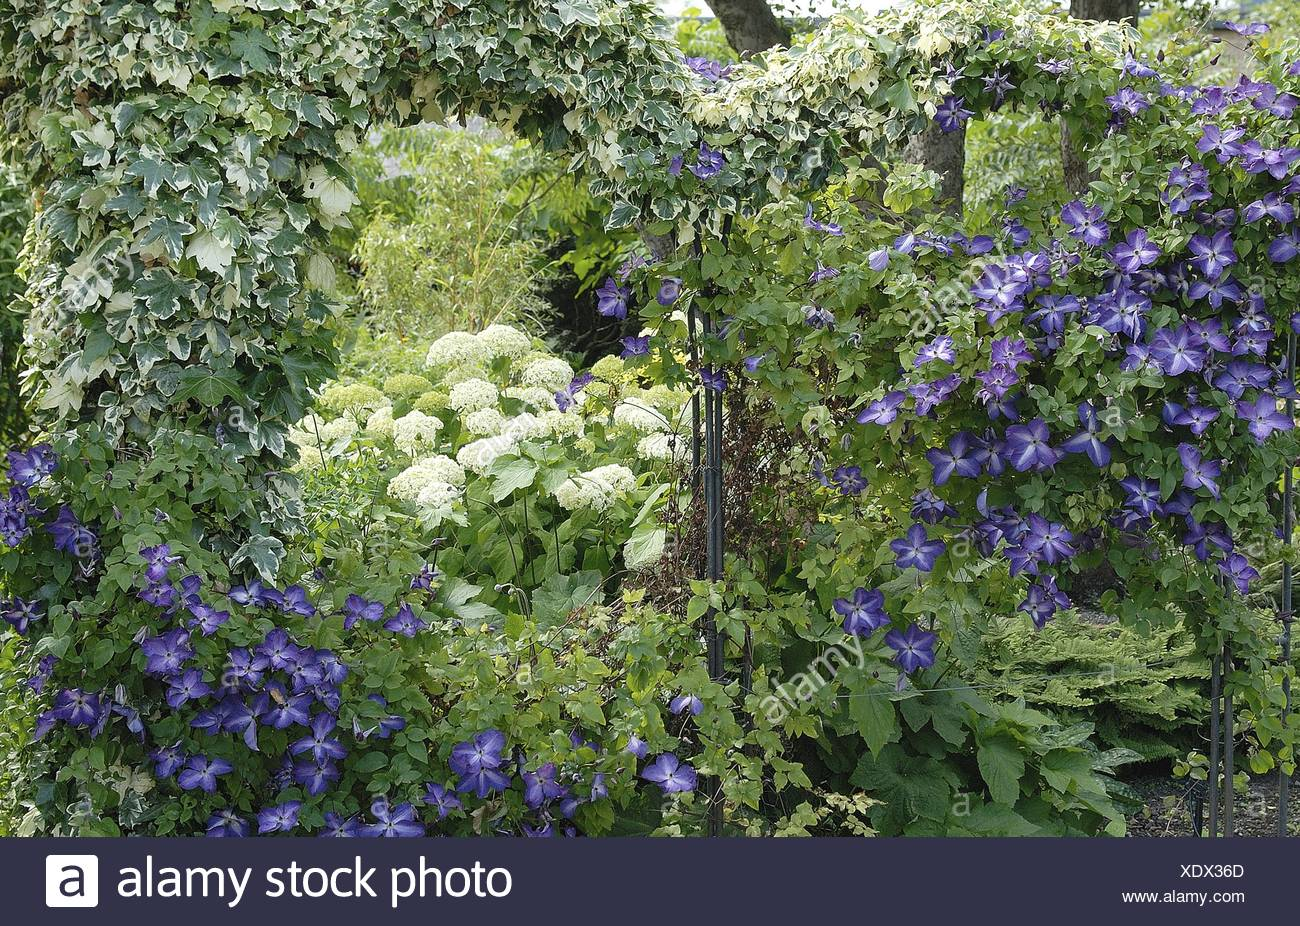 English ivy, common ivy (Hedera helix 'Glacier', Hedera helix Glacier), with Clematis and hydrangea - Stock Image